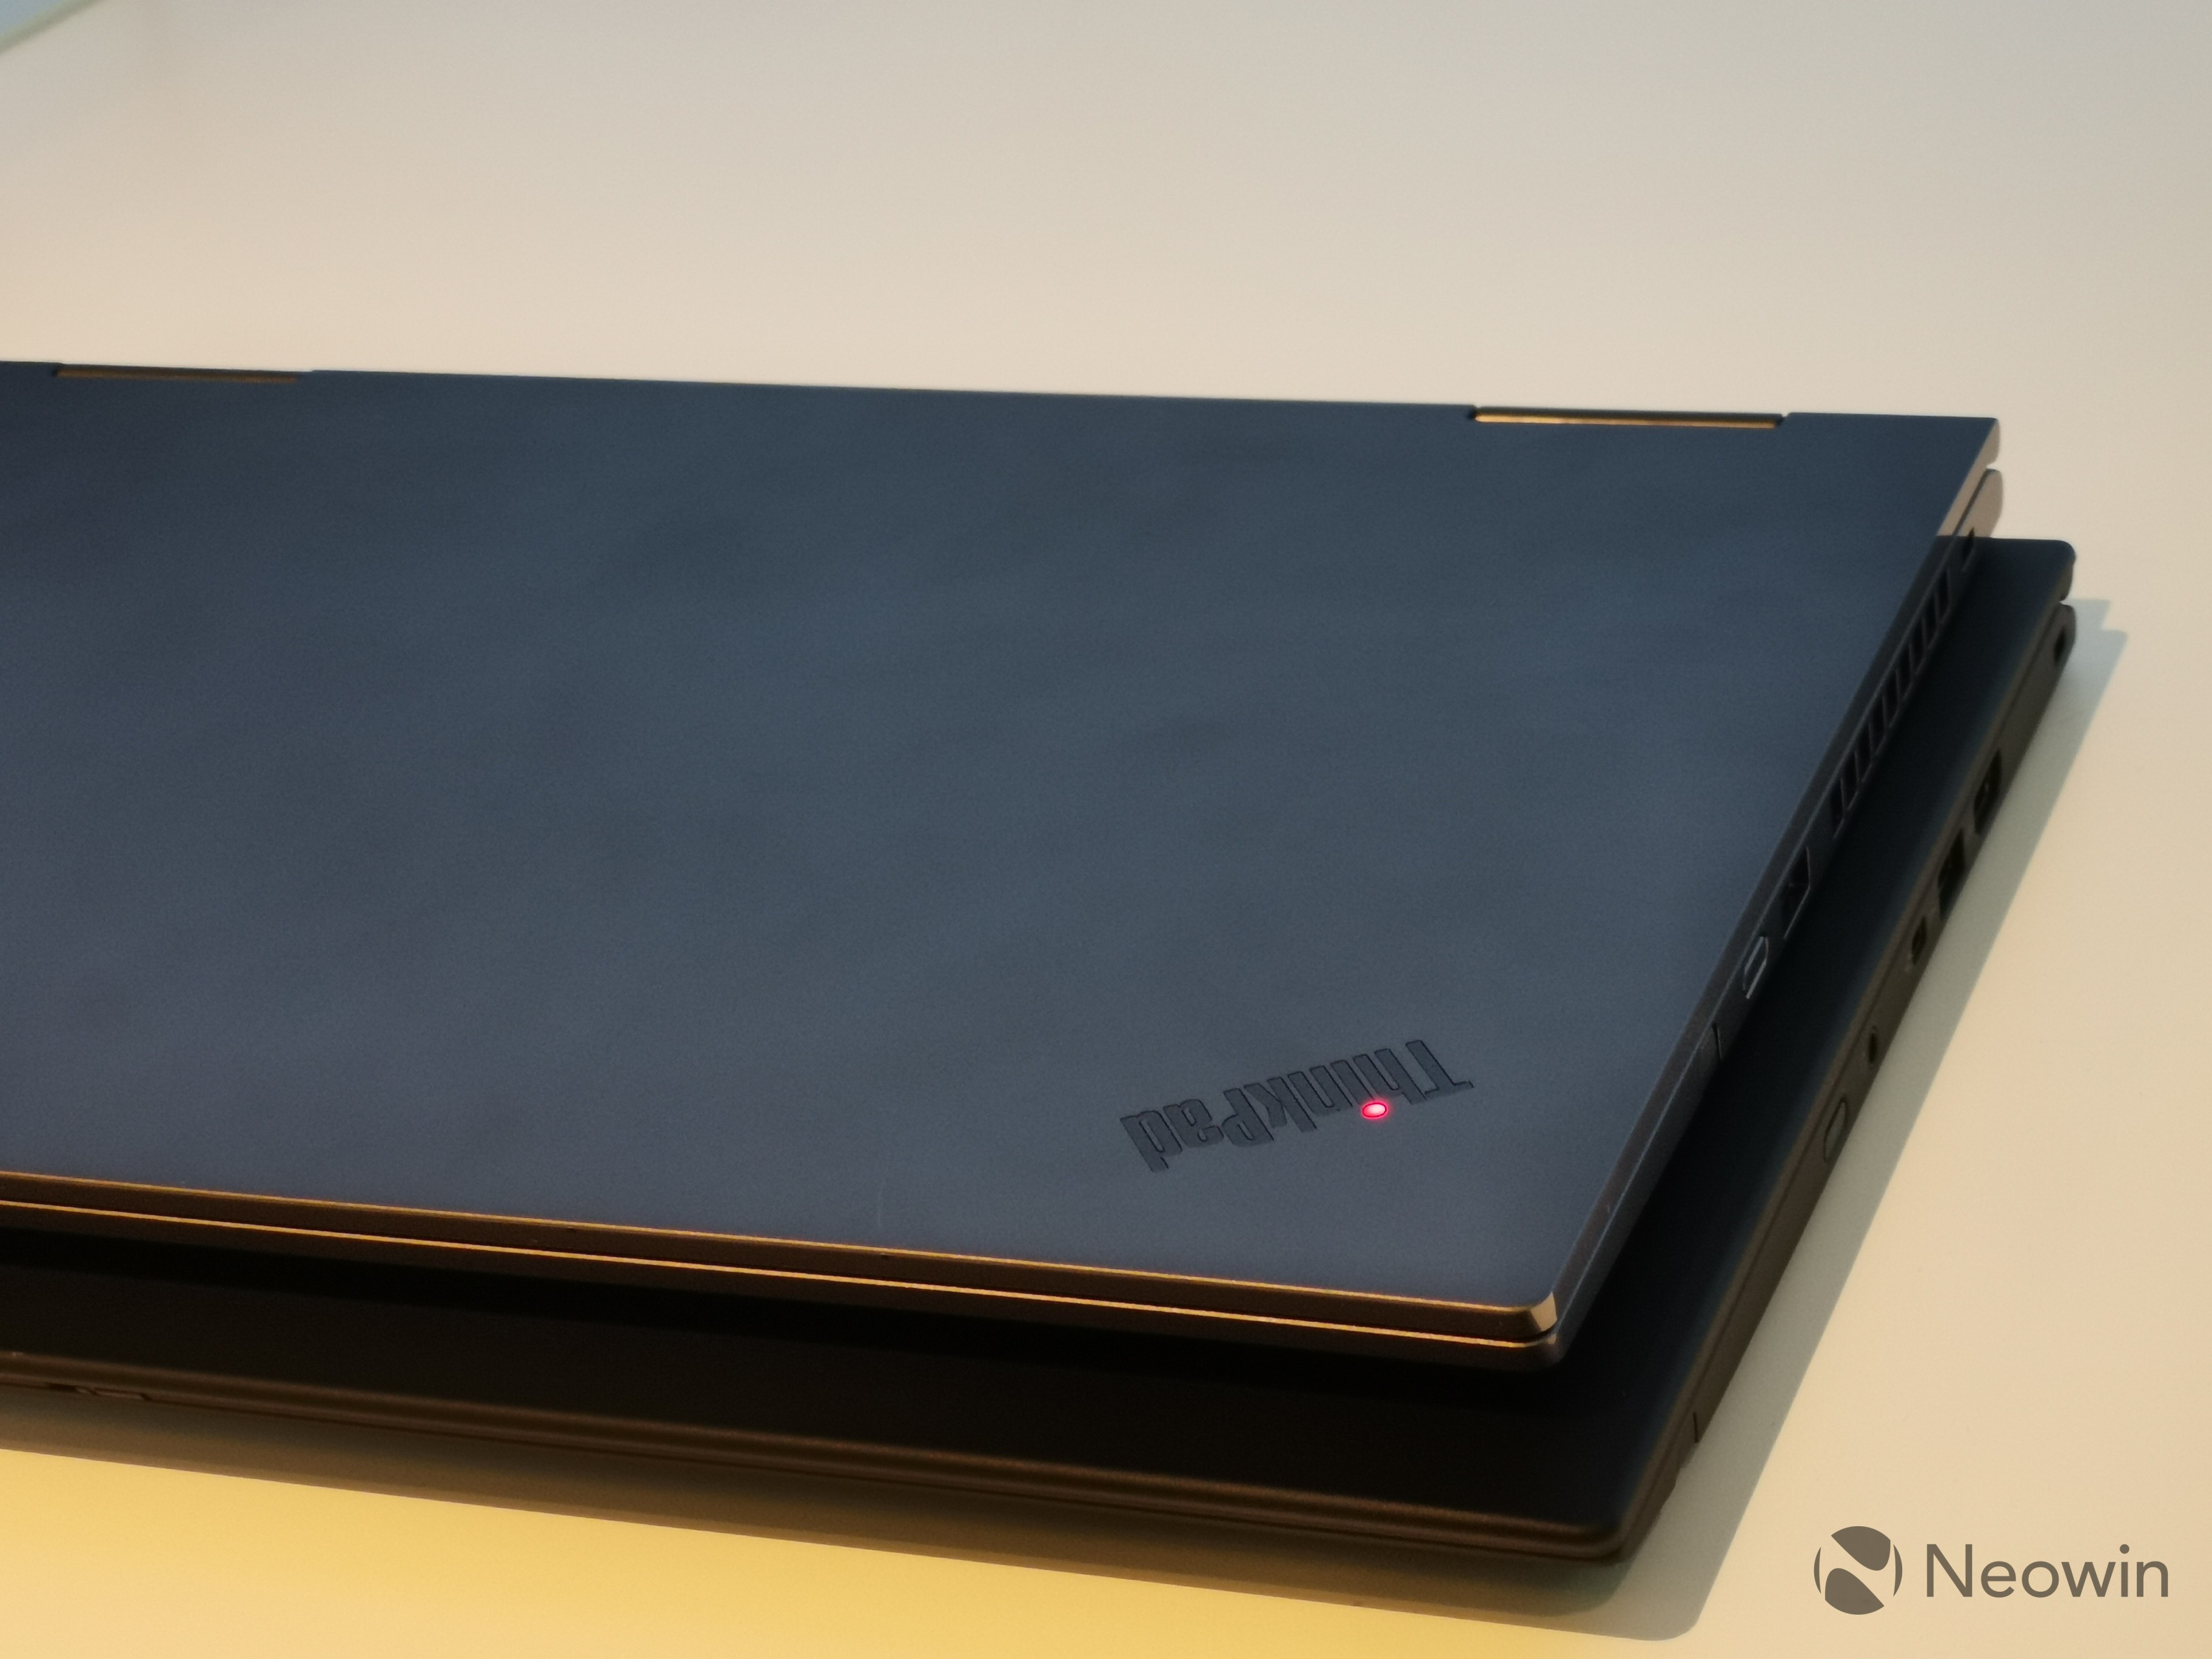 Hands on with Lenovo's new ThinkPad X1 Carbon and Yoga - Neowin